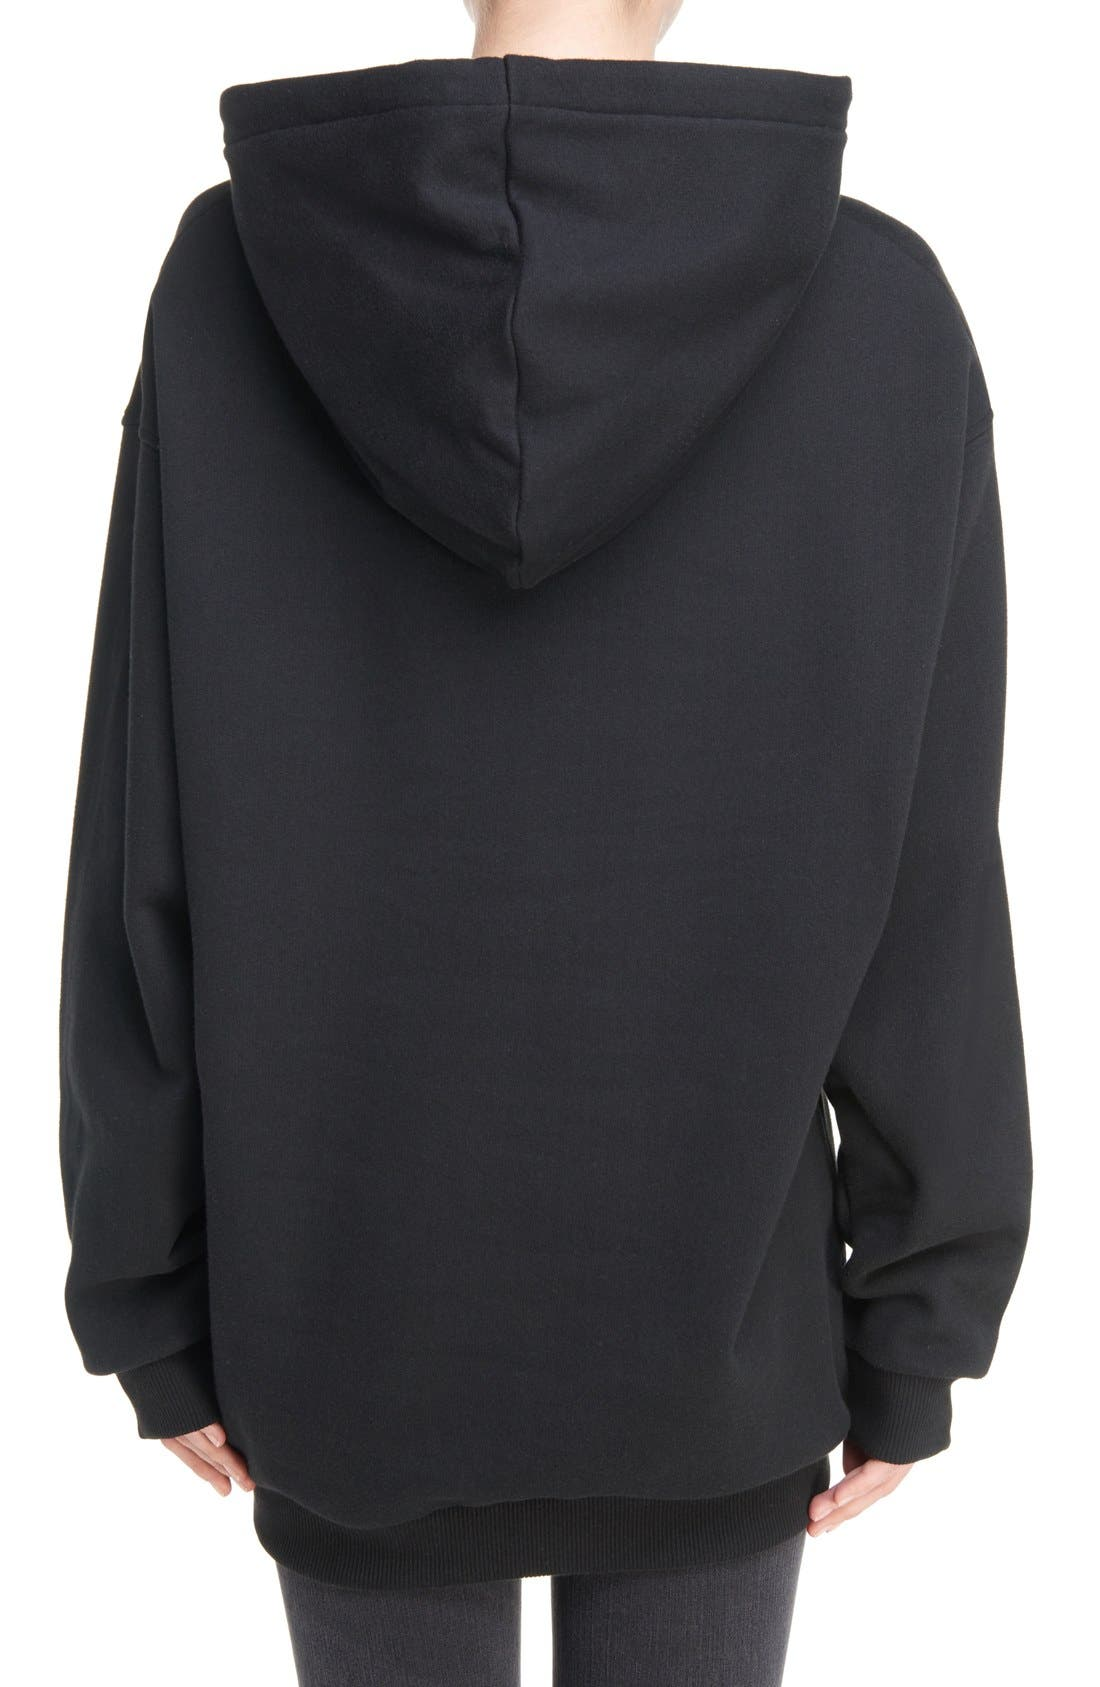 Yala Patch Hoodie,                             Alternate thumbnail 3, color,                             002